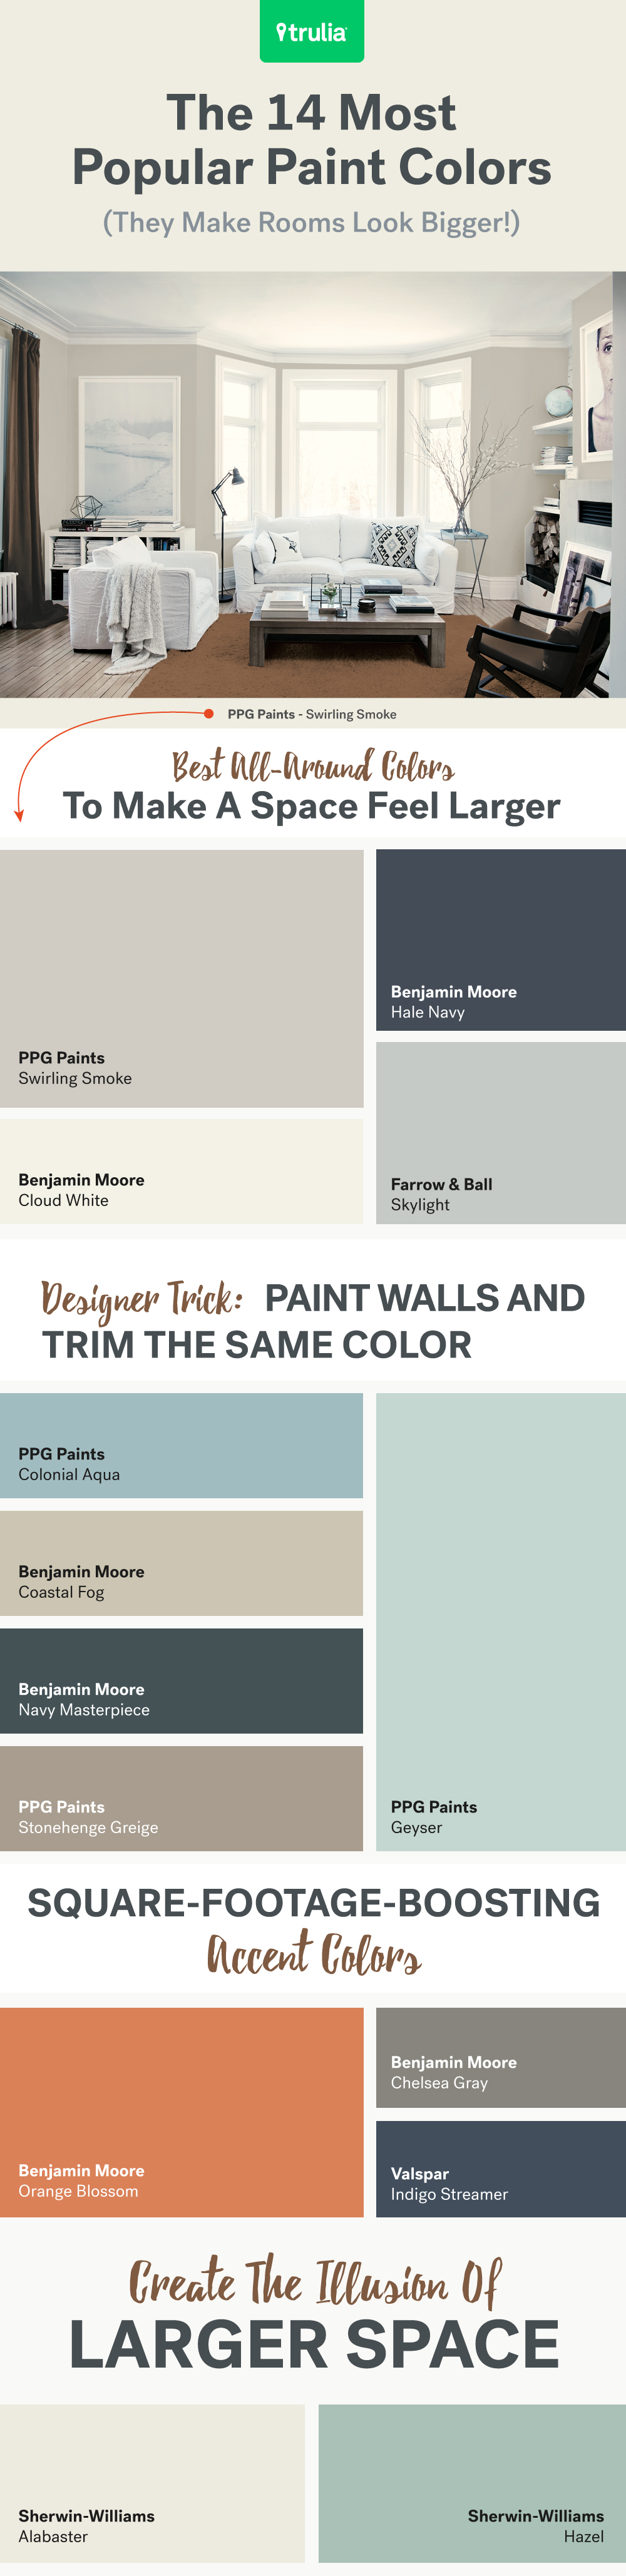 Southern classic realtors nivla calcinore bringing you home the 14 most popular paint Great paint colors